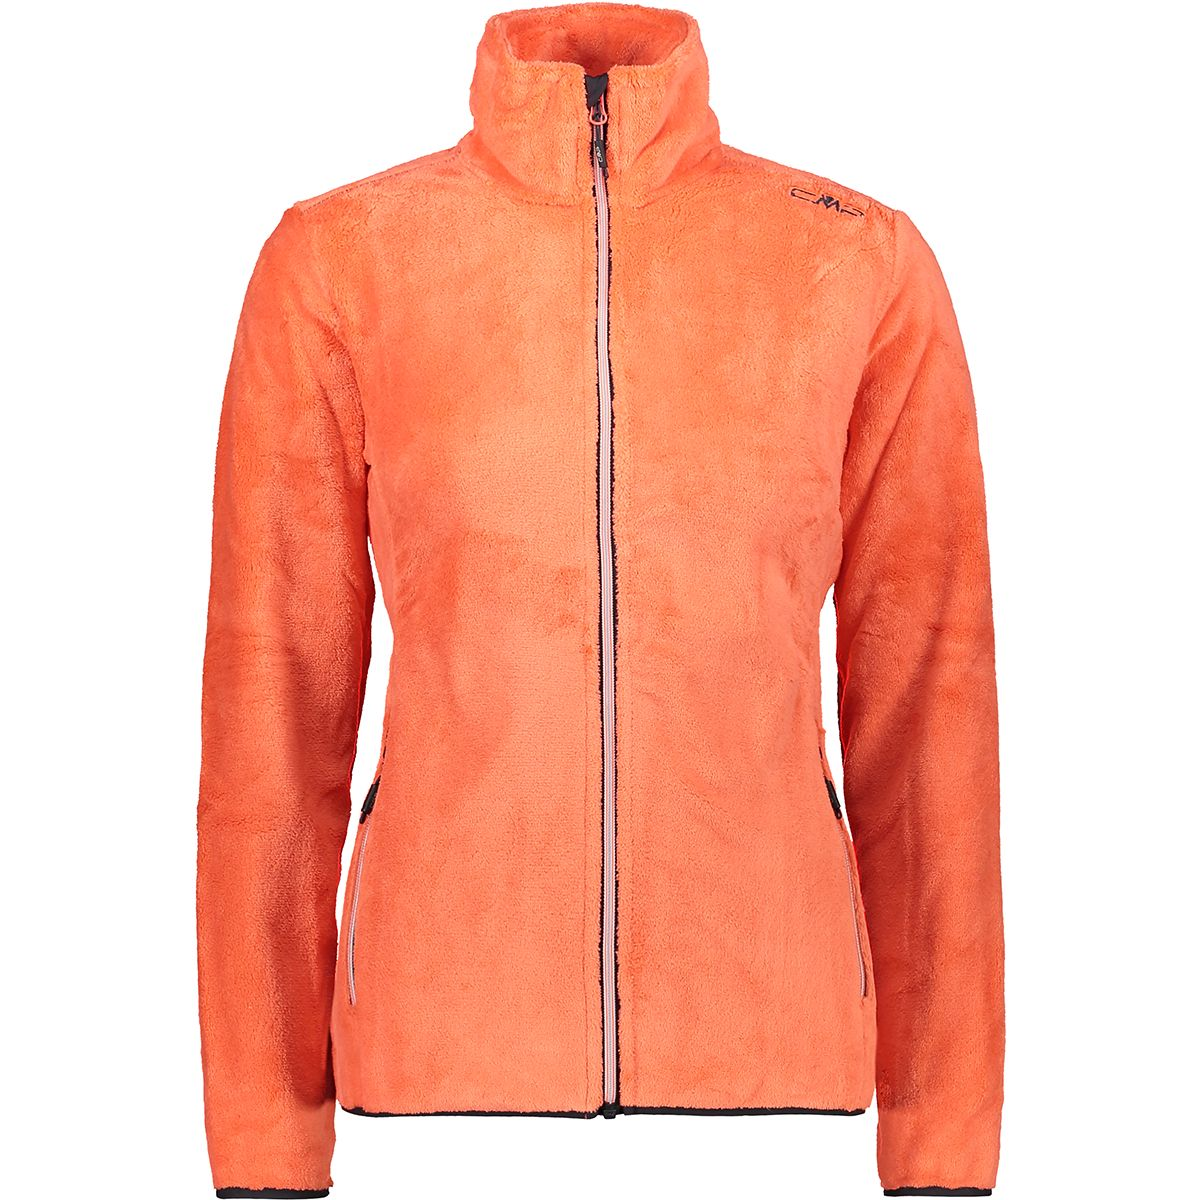 CMP Damen Highloft Jacke (Größe M, Orange) | Fleecejacken > Damen